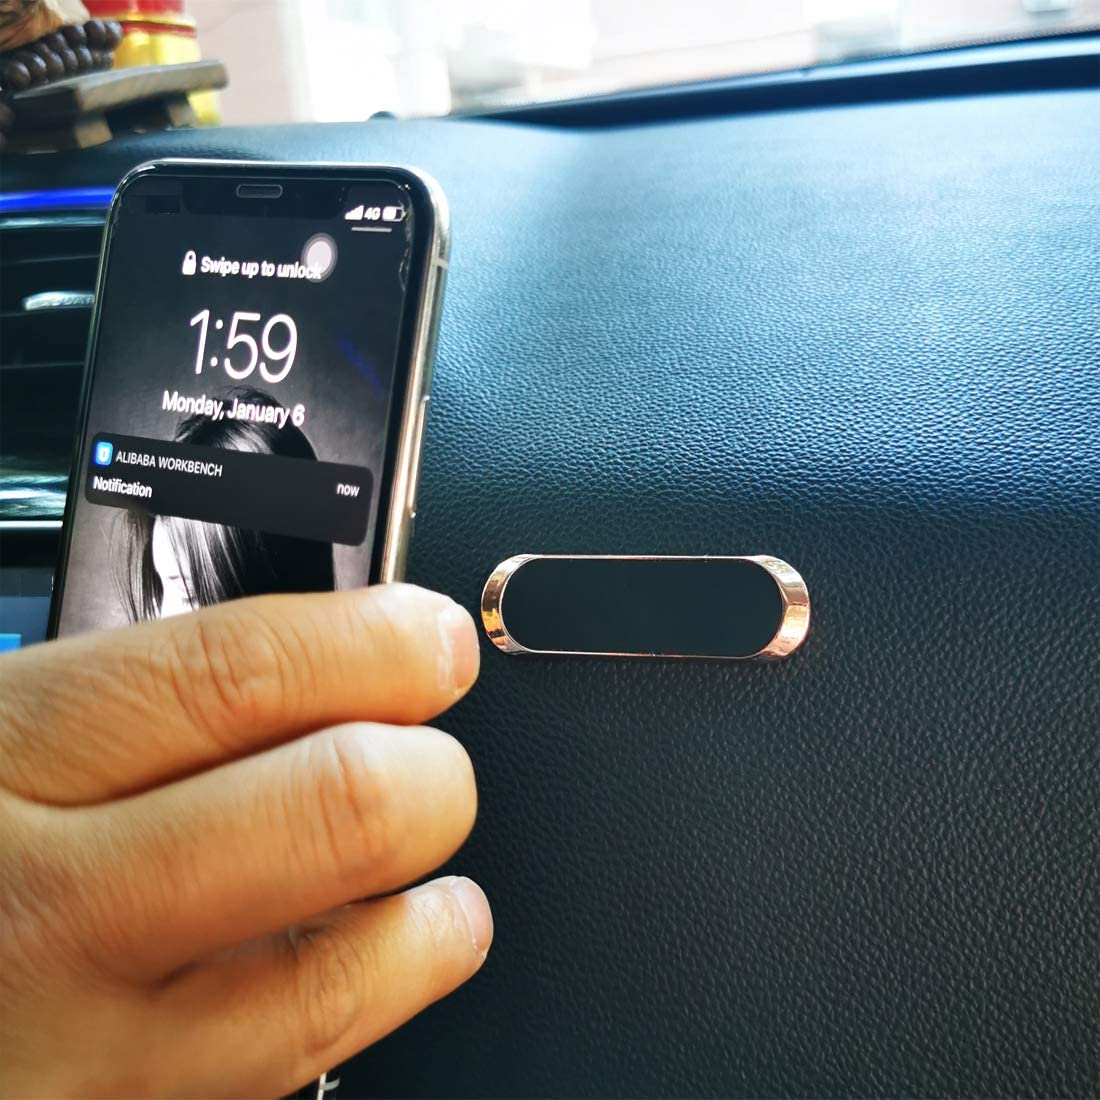 S8//S7 and More Magnetic Phone Car Mount Rose Gold 8,Samsung Galaxy S10//S9 Flat Dashboard Magnetic Car Phone Holder Compatible with iPhone 11//XS//XR//X